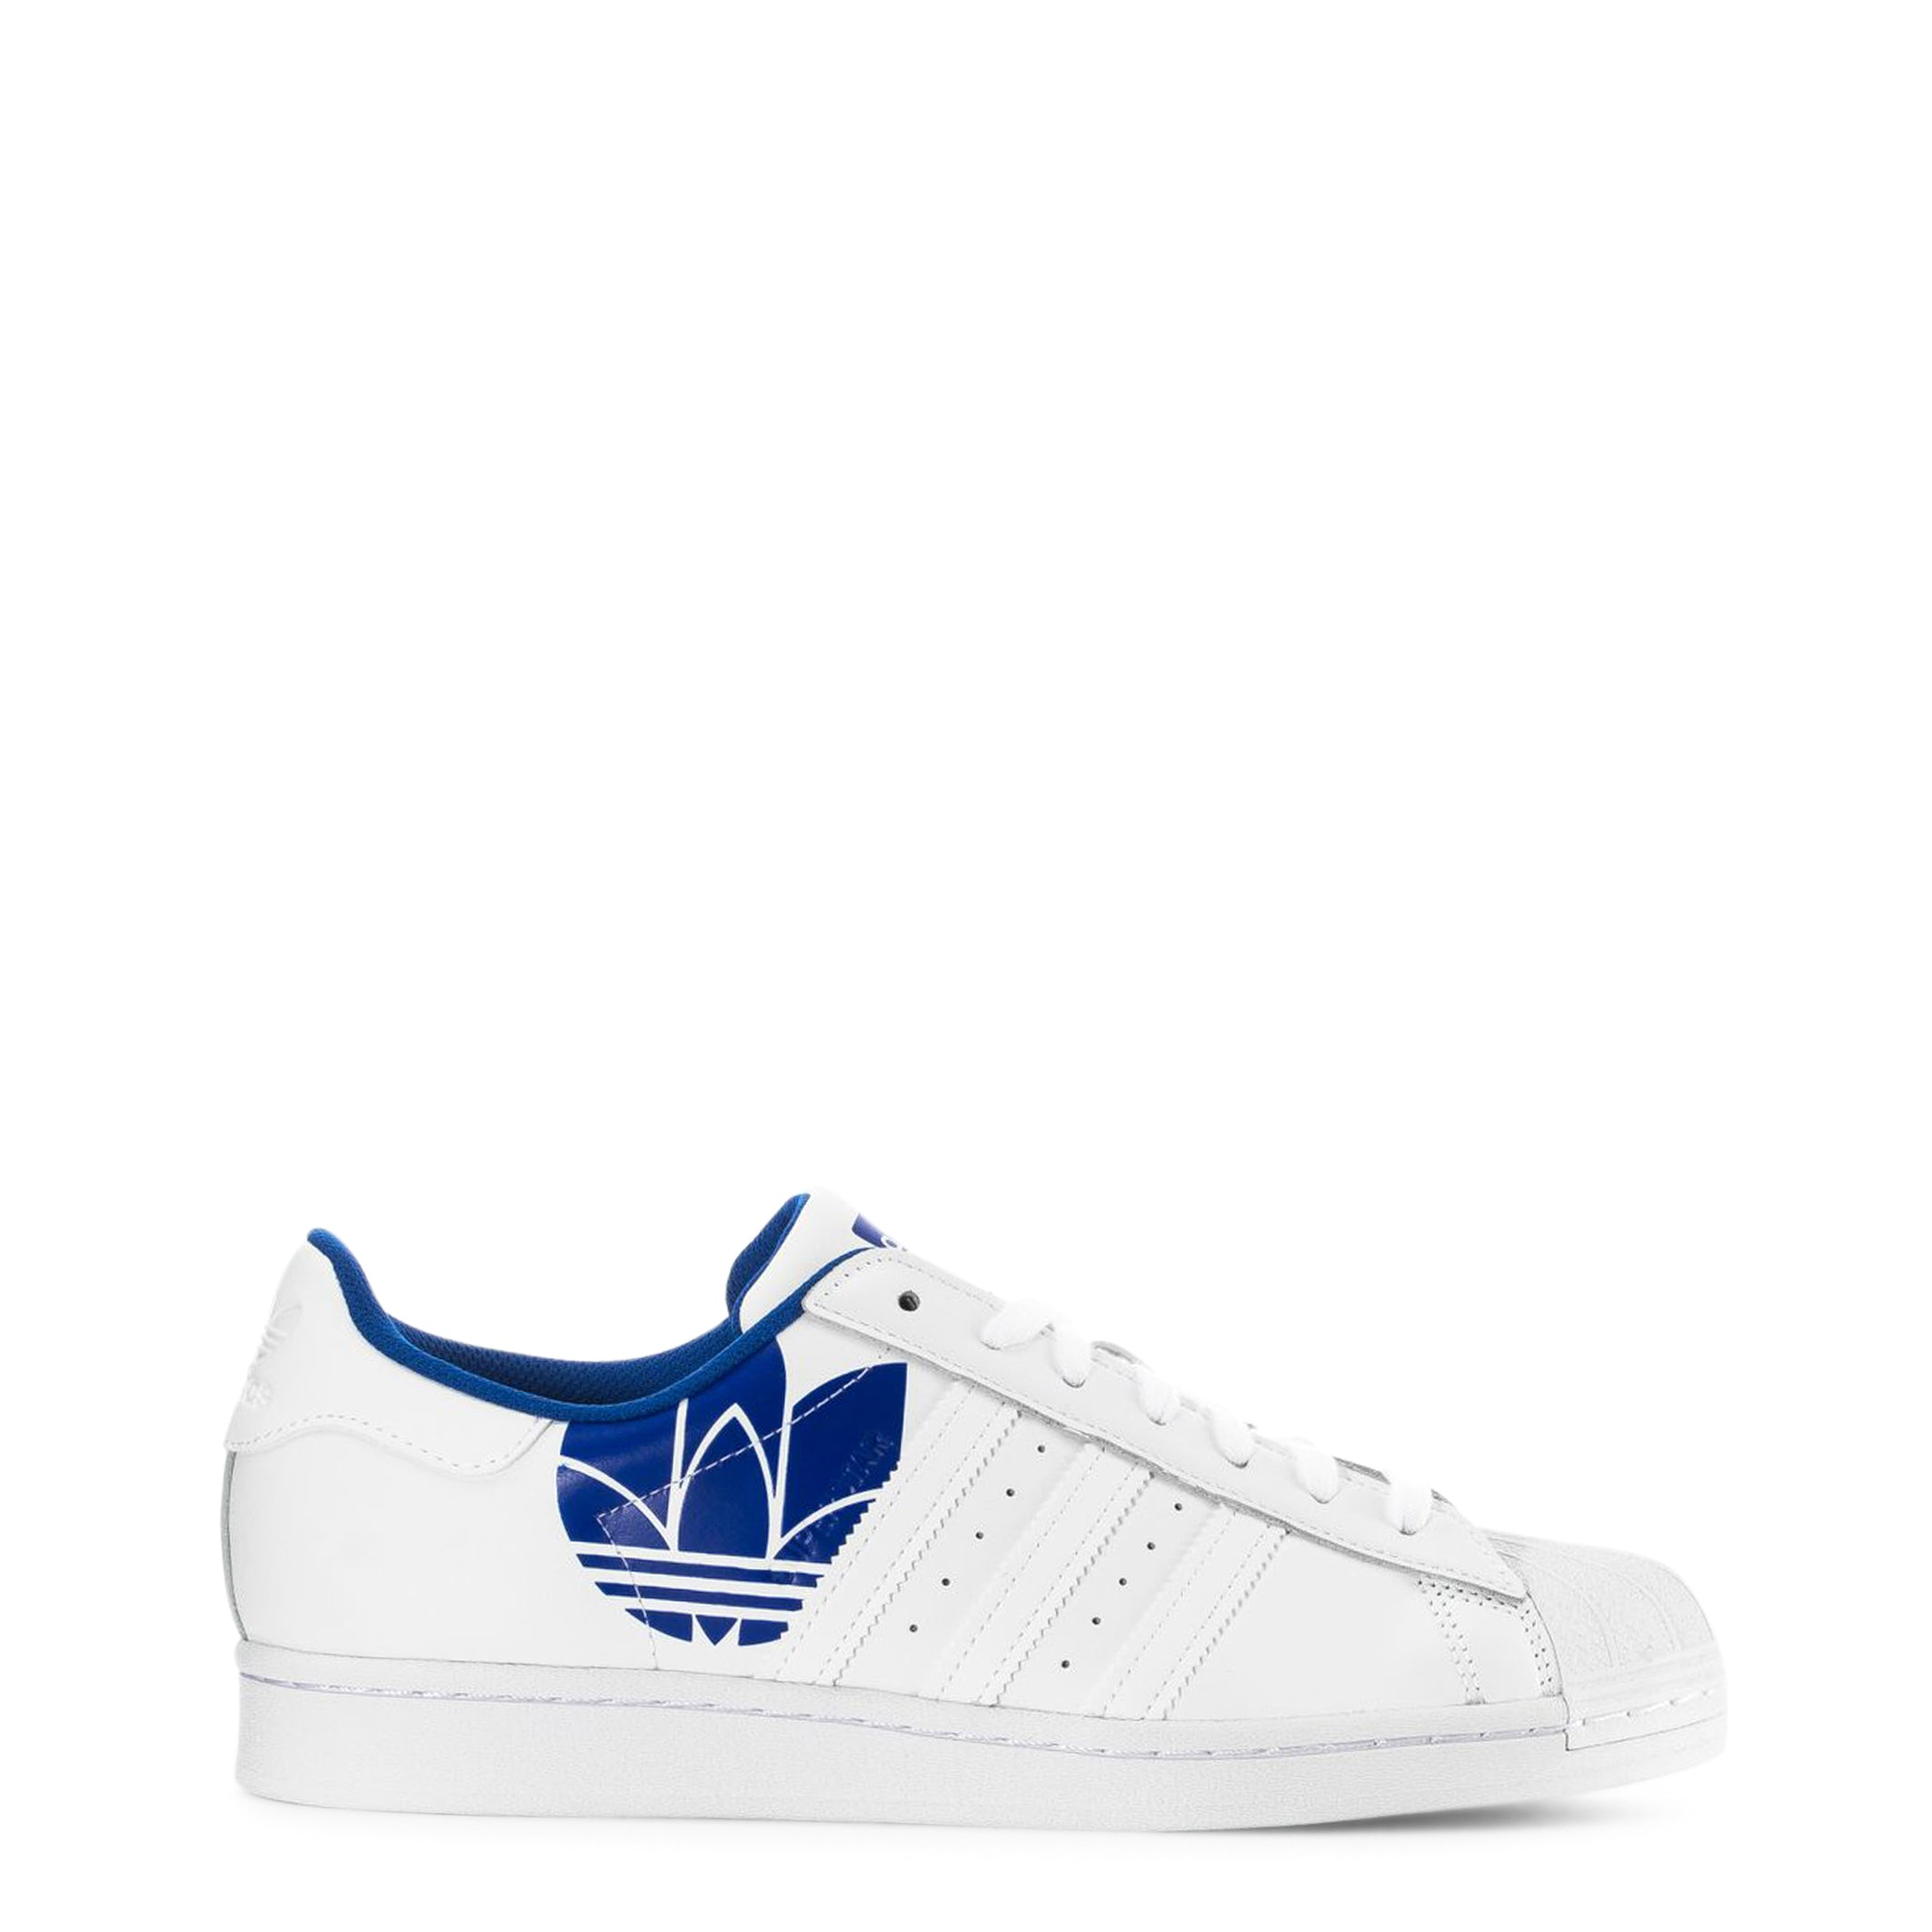 Adidas - Superstar Sneakers - Brands On Sale